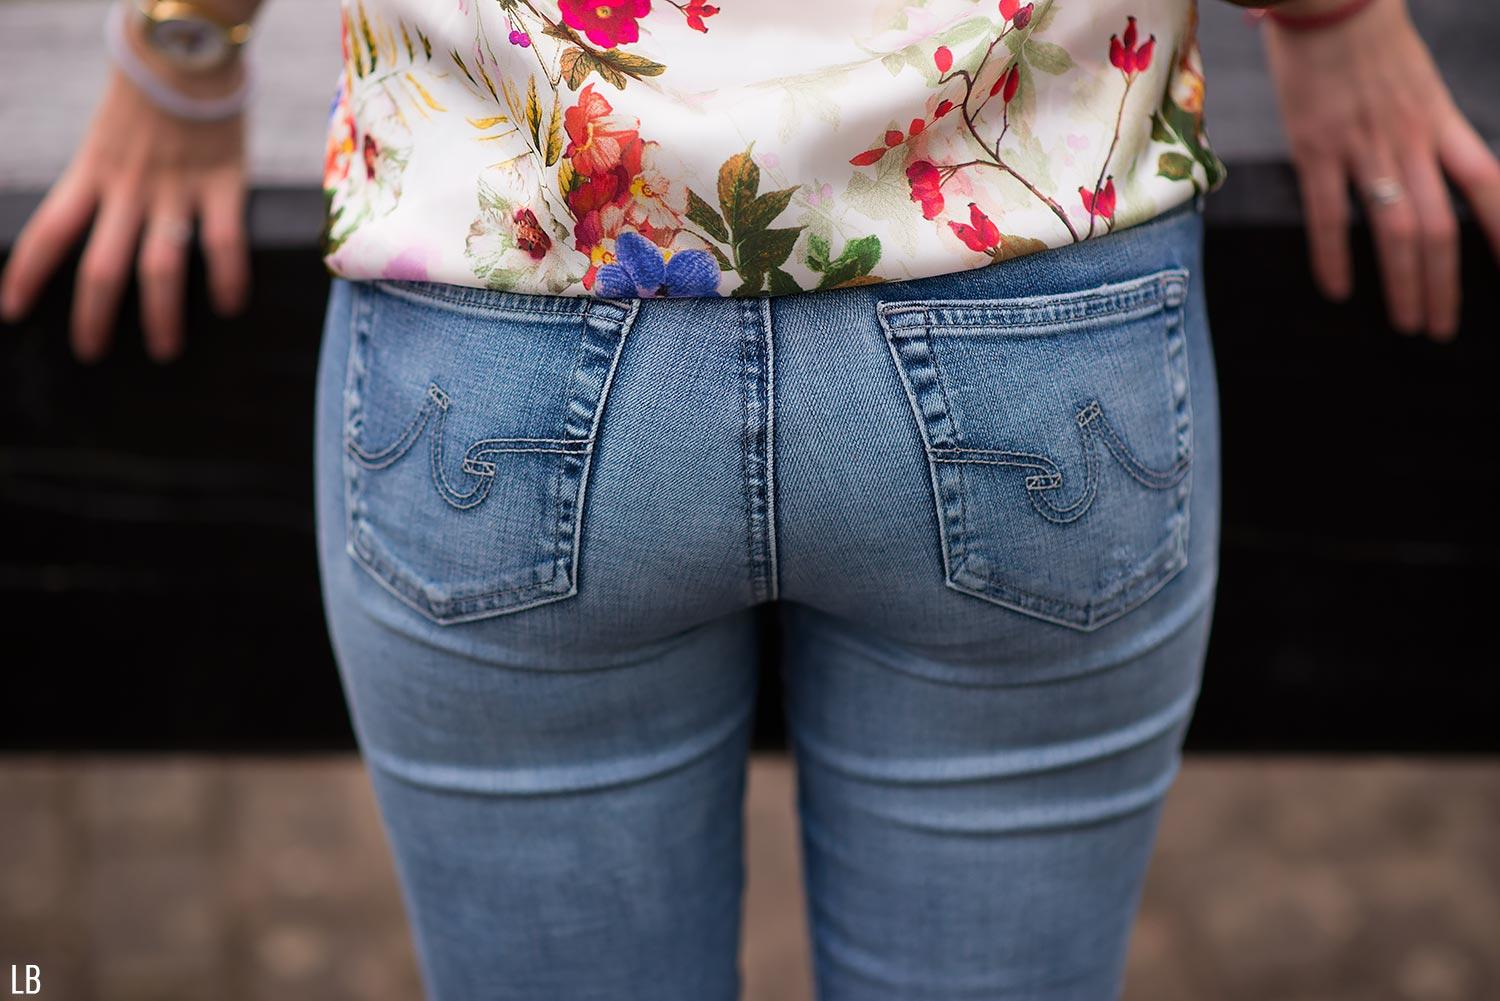 ag-lorna-burford-butt-in-jeans